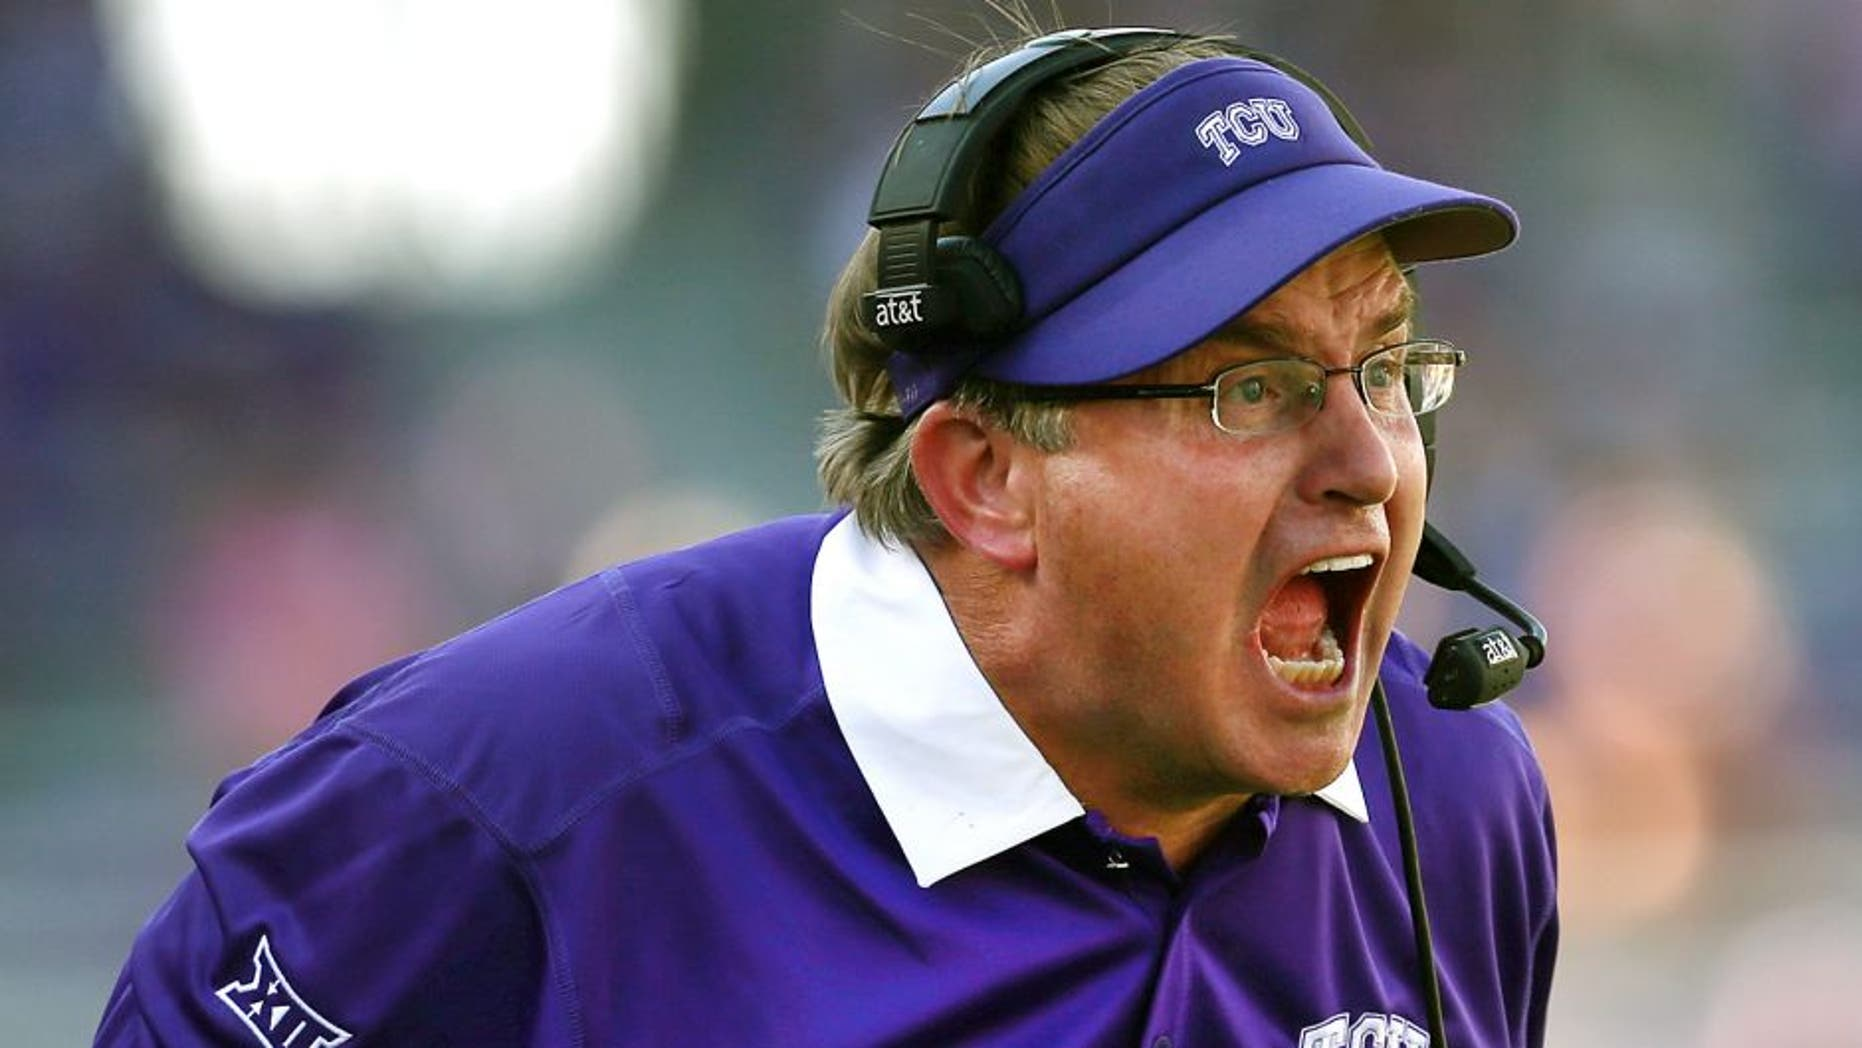 FORT WORTH, TX - SEPTEMBER 12: Head coach Gary Patterson of the TCU Horned Frogs leads his team against the Stephen F. Austin Lumberjacks in the secodn half at Amon G. Carter Stadium on September 12, 2015 in Fort Worth, Texas. (Photo by Tom Pennington/Getty Images)